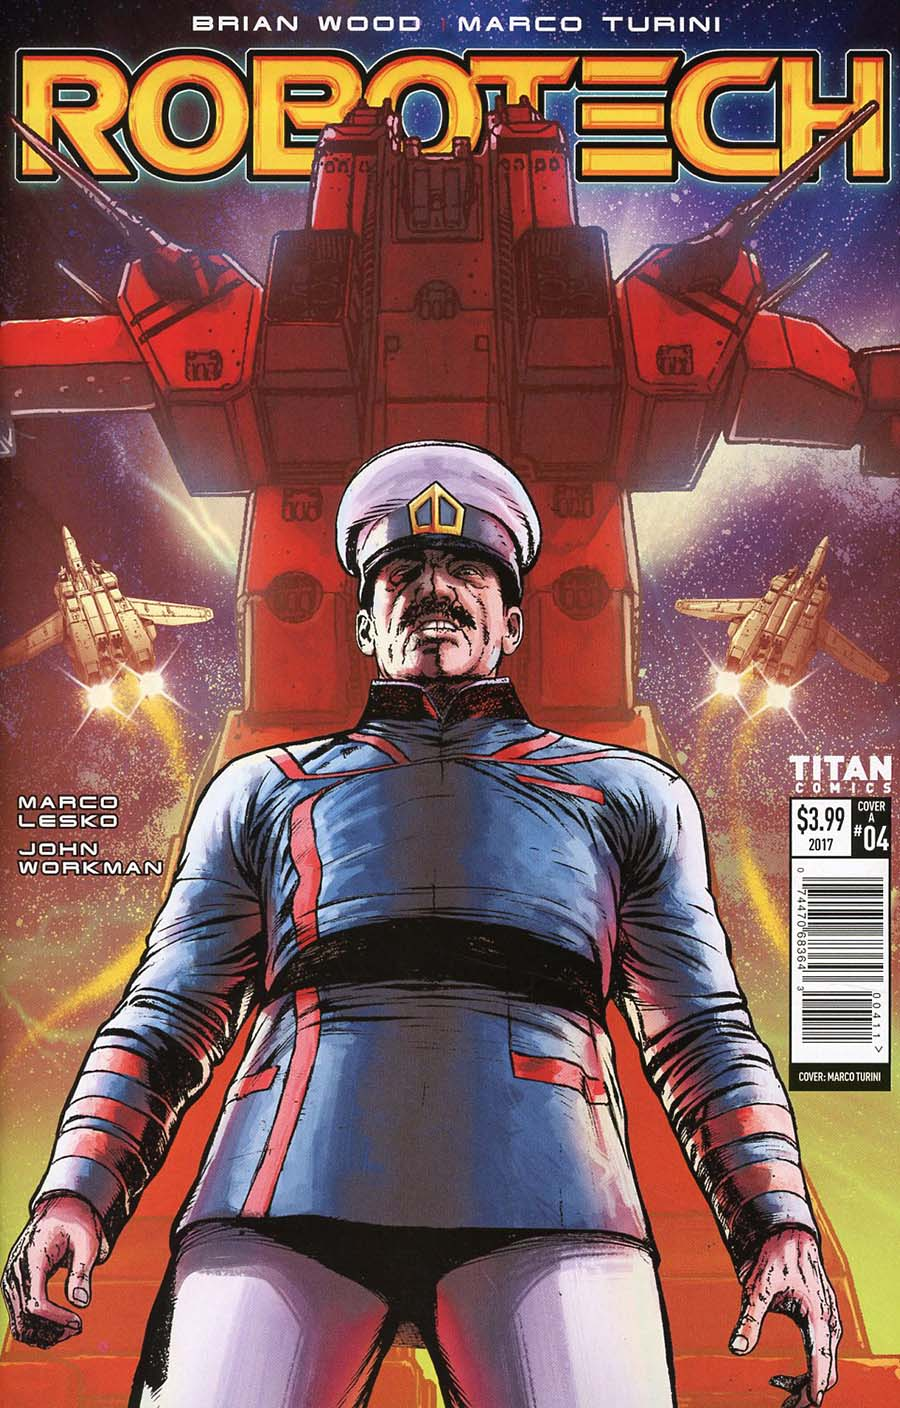 Robotech Vol 3 #4 Cover A Regular Marco Turini Cover